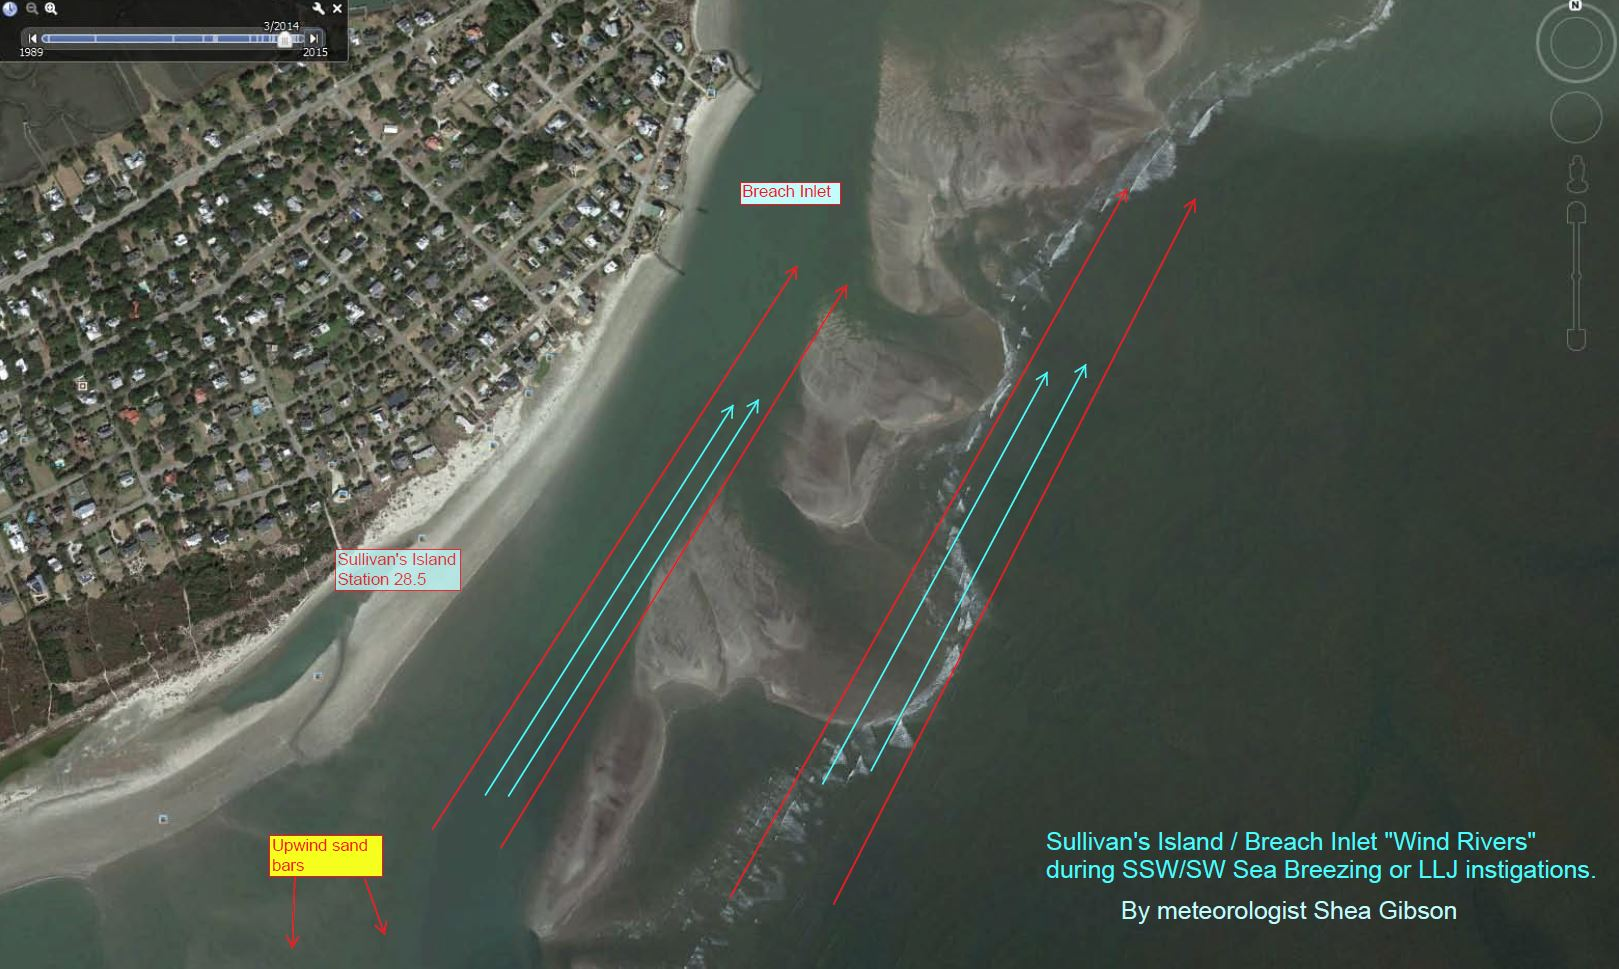 Breach Inlet Wind Rivers